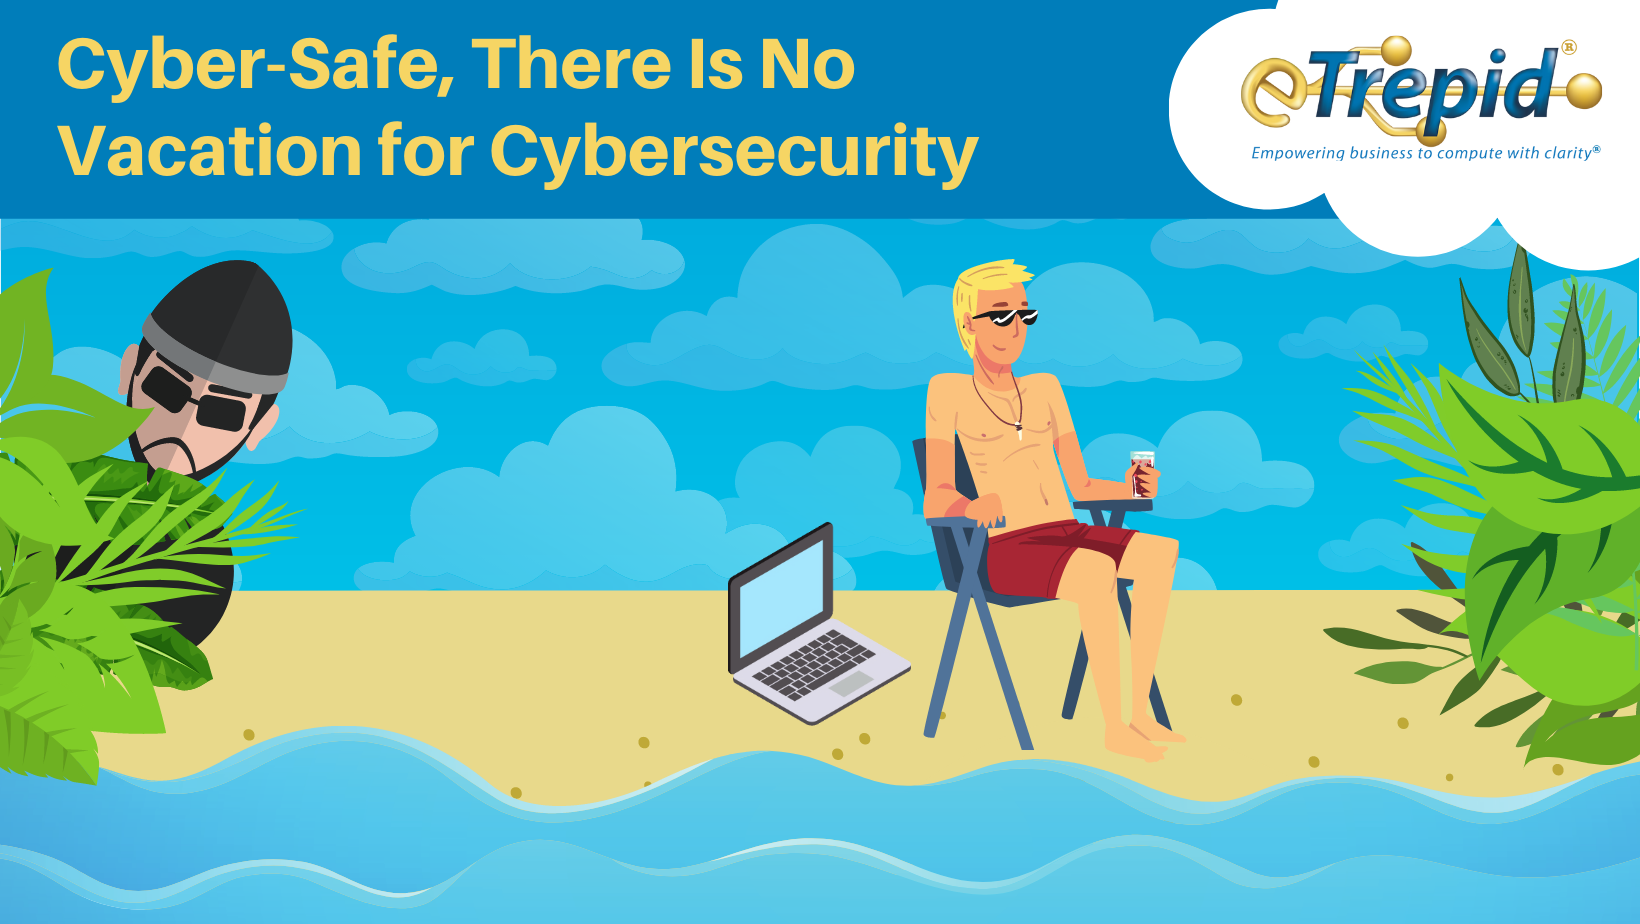 Cyber-Safe, There Is No Vacation for Cybersecurity